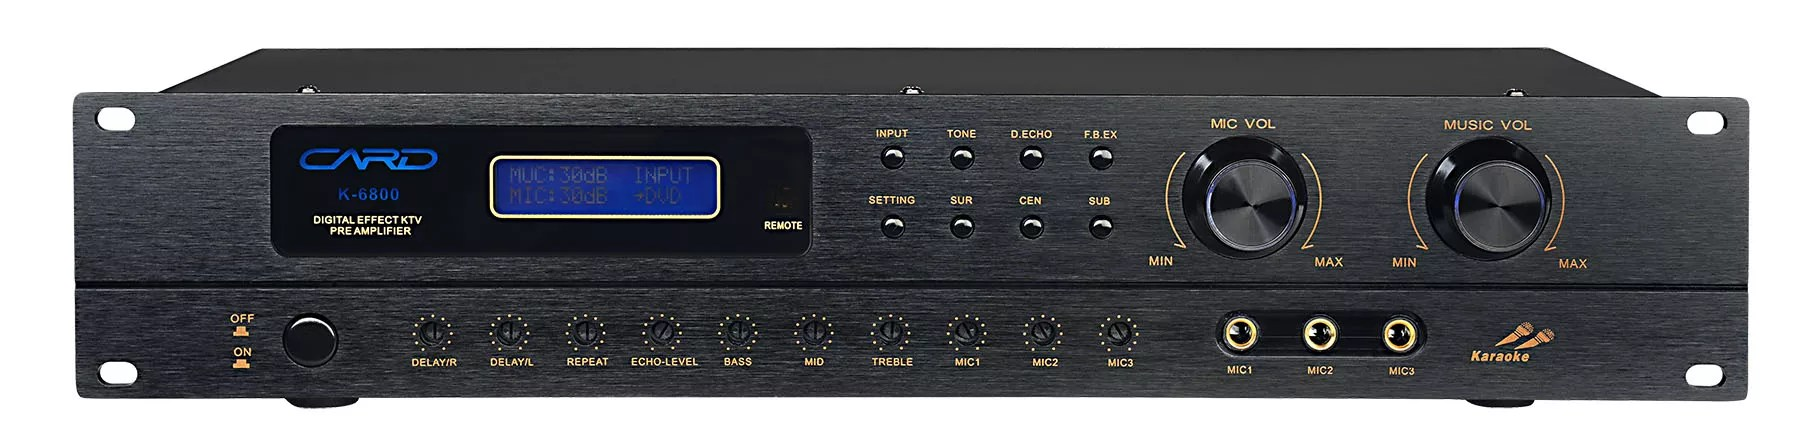 Audio Echo High Quality But Reasonable Price Home Audio System Echo Reverd Mixer Buy Dsp Audio Processor Pro Audio Processor 5 1 Audio Processor For Karaoke